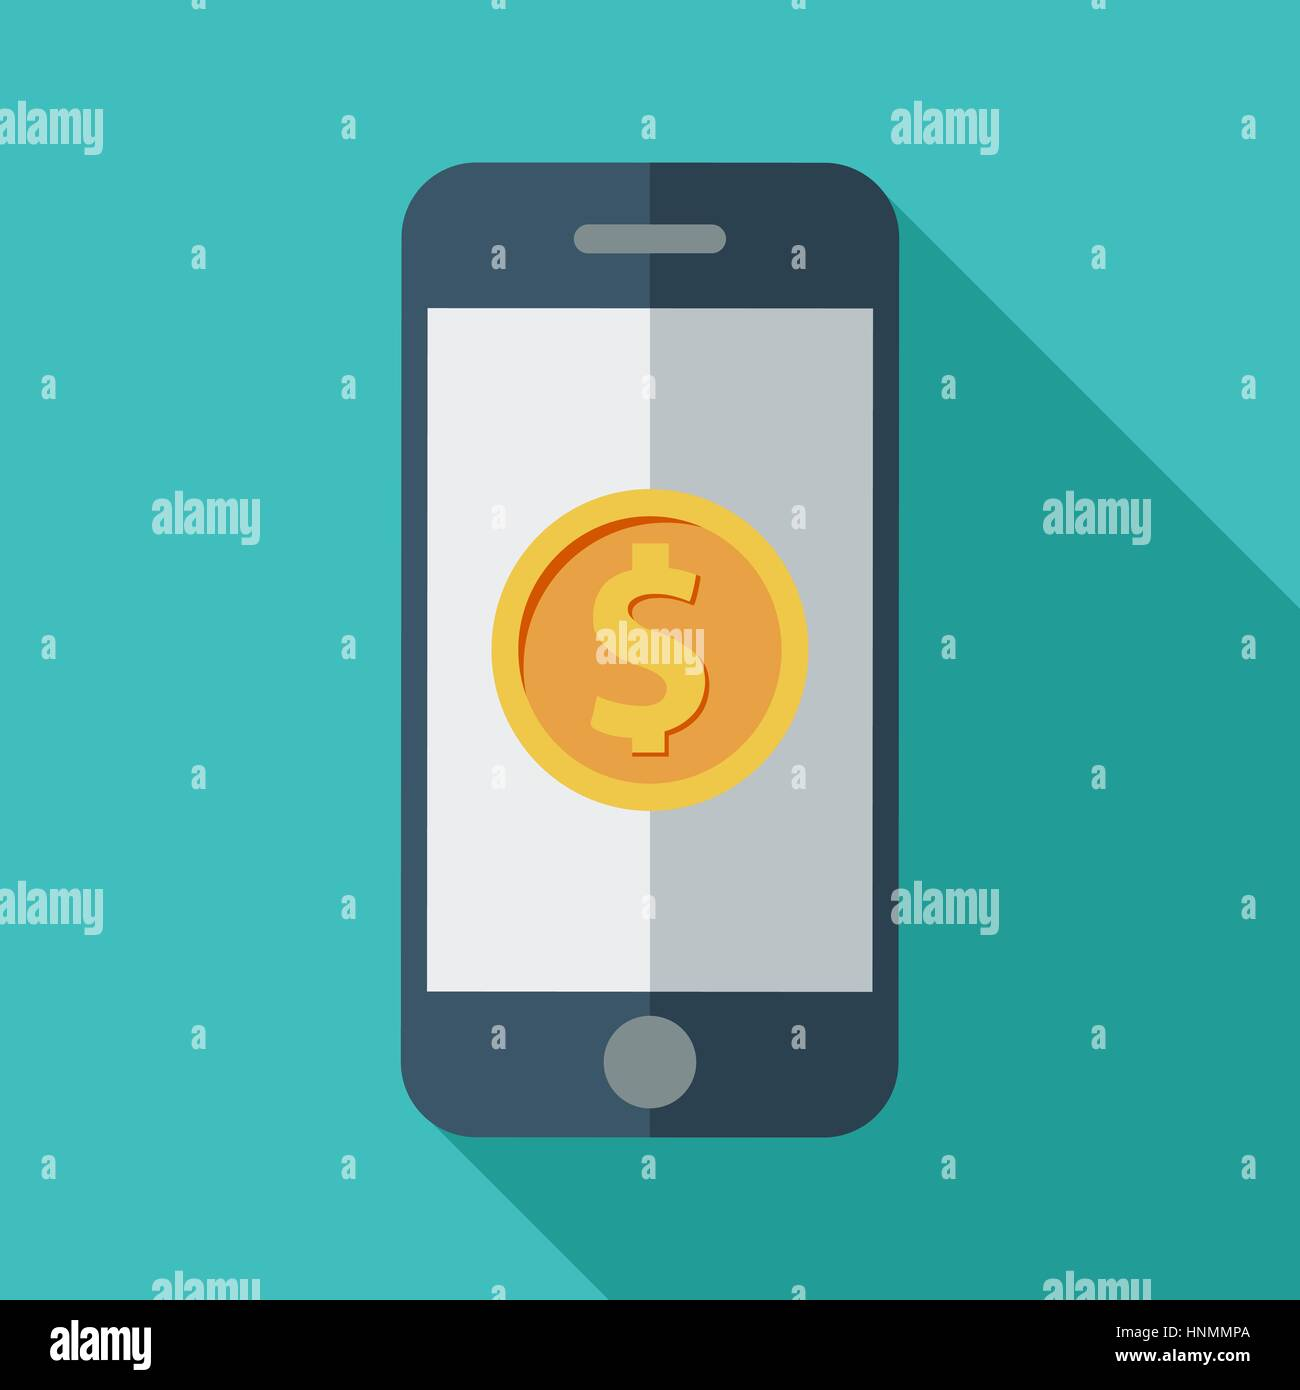 Phone with dollar sign. Color Flat design style. Vector illustration. - Stock Vector